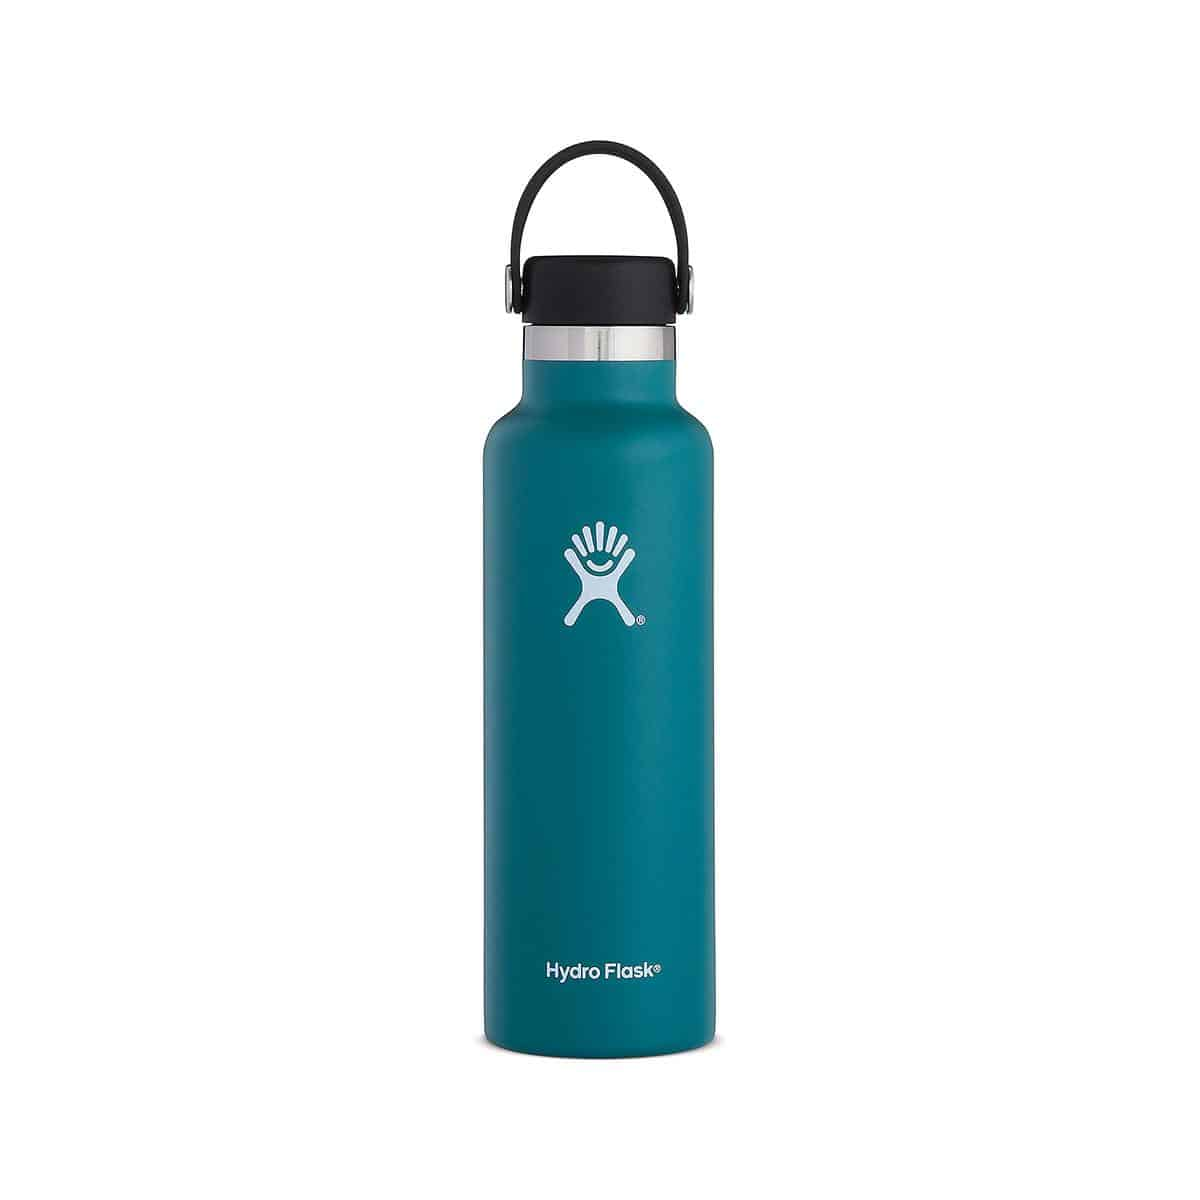 Hydro Flask Standard Mouth 21 ounce